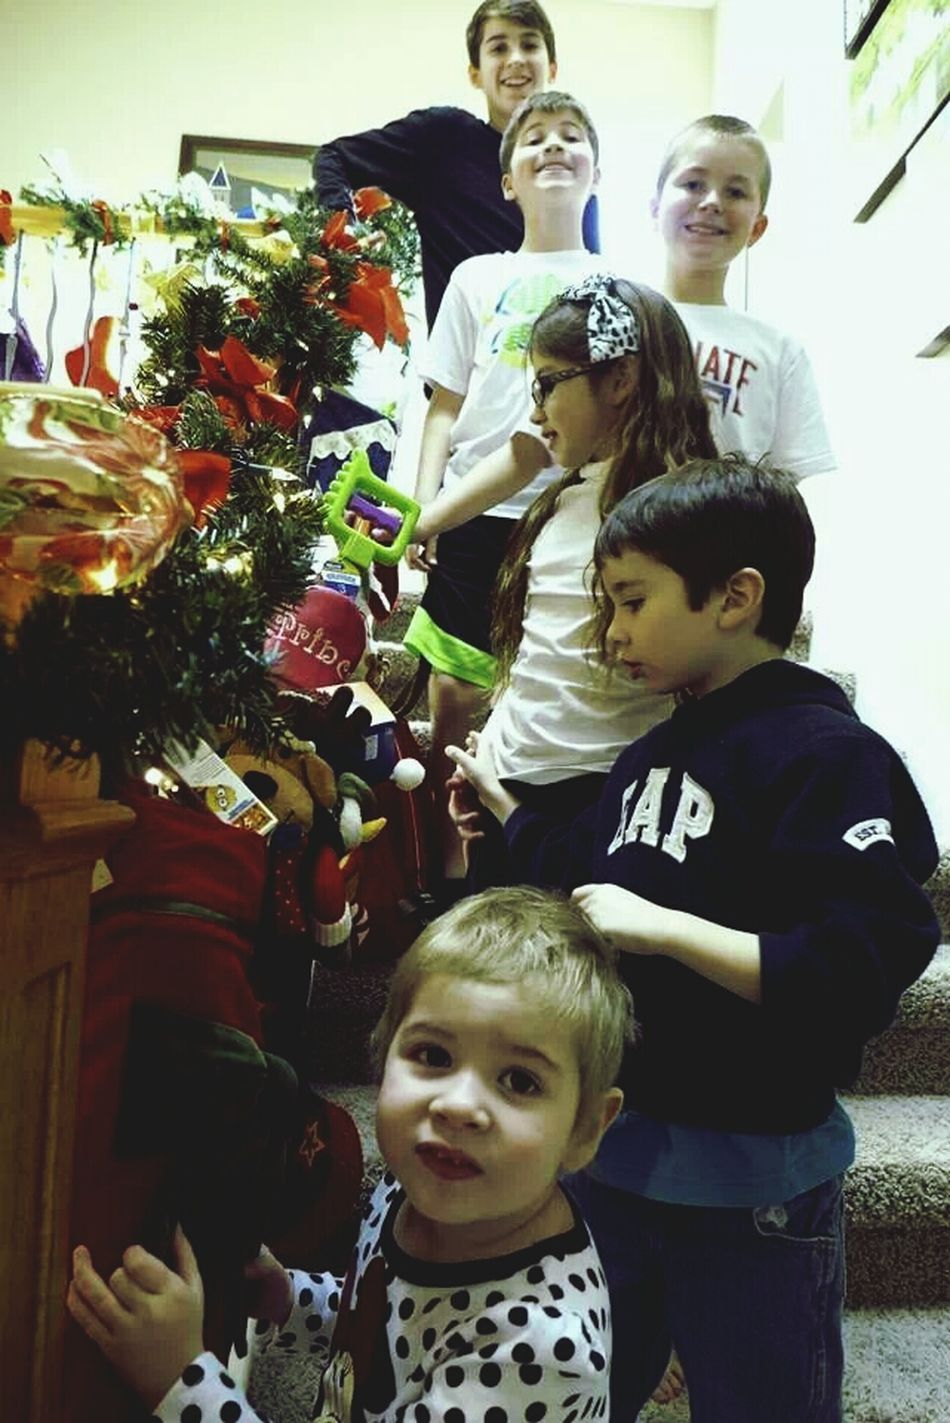 My grandkids were beside themselves to peek in thei stockings!